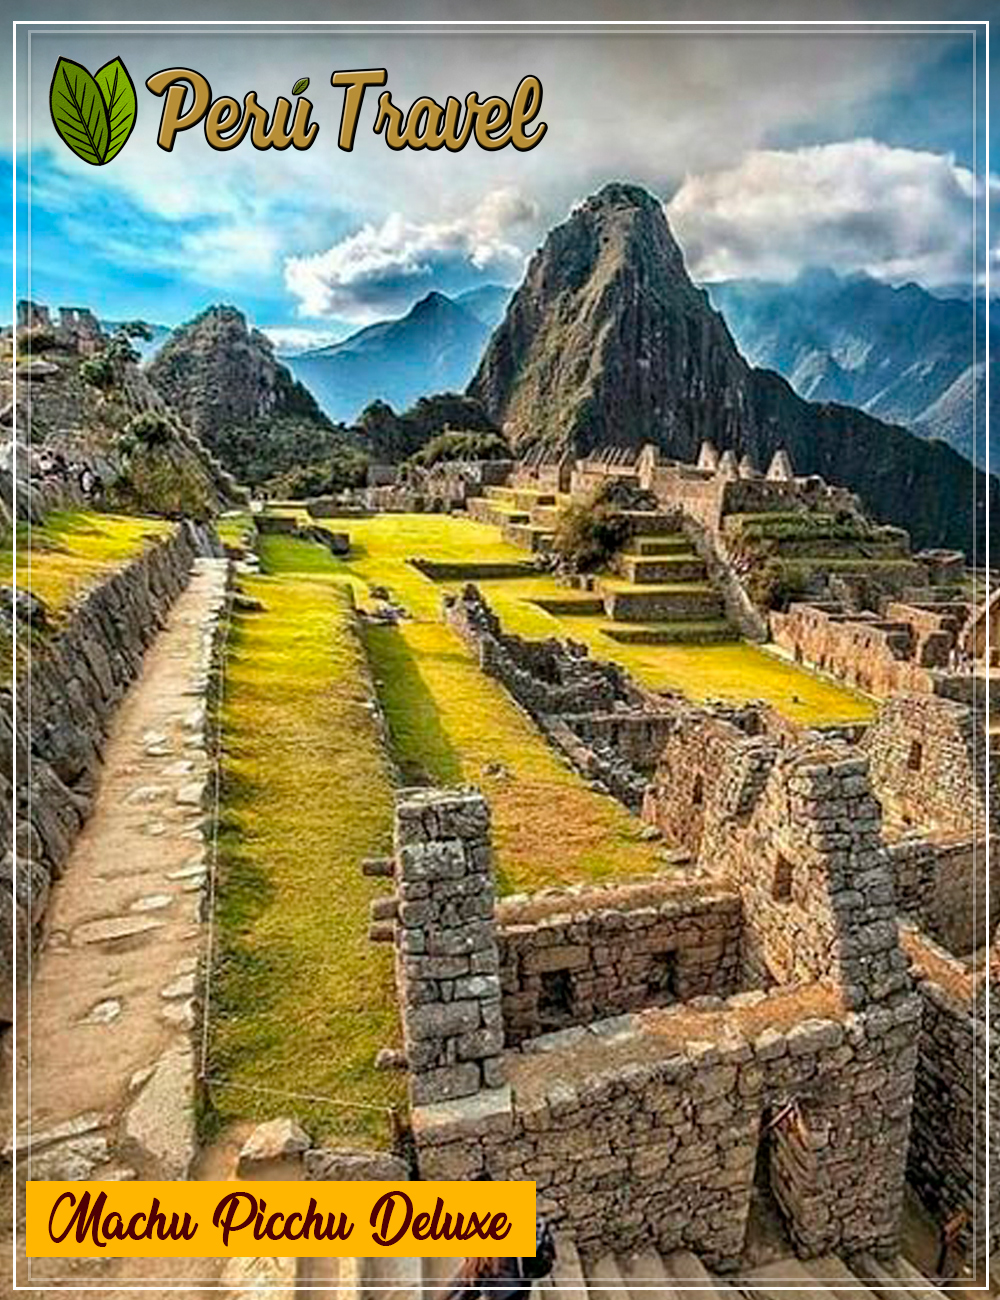 The peru travel